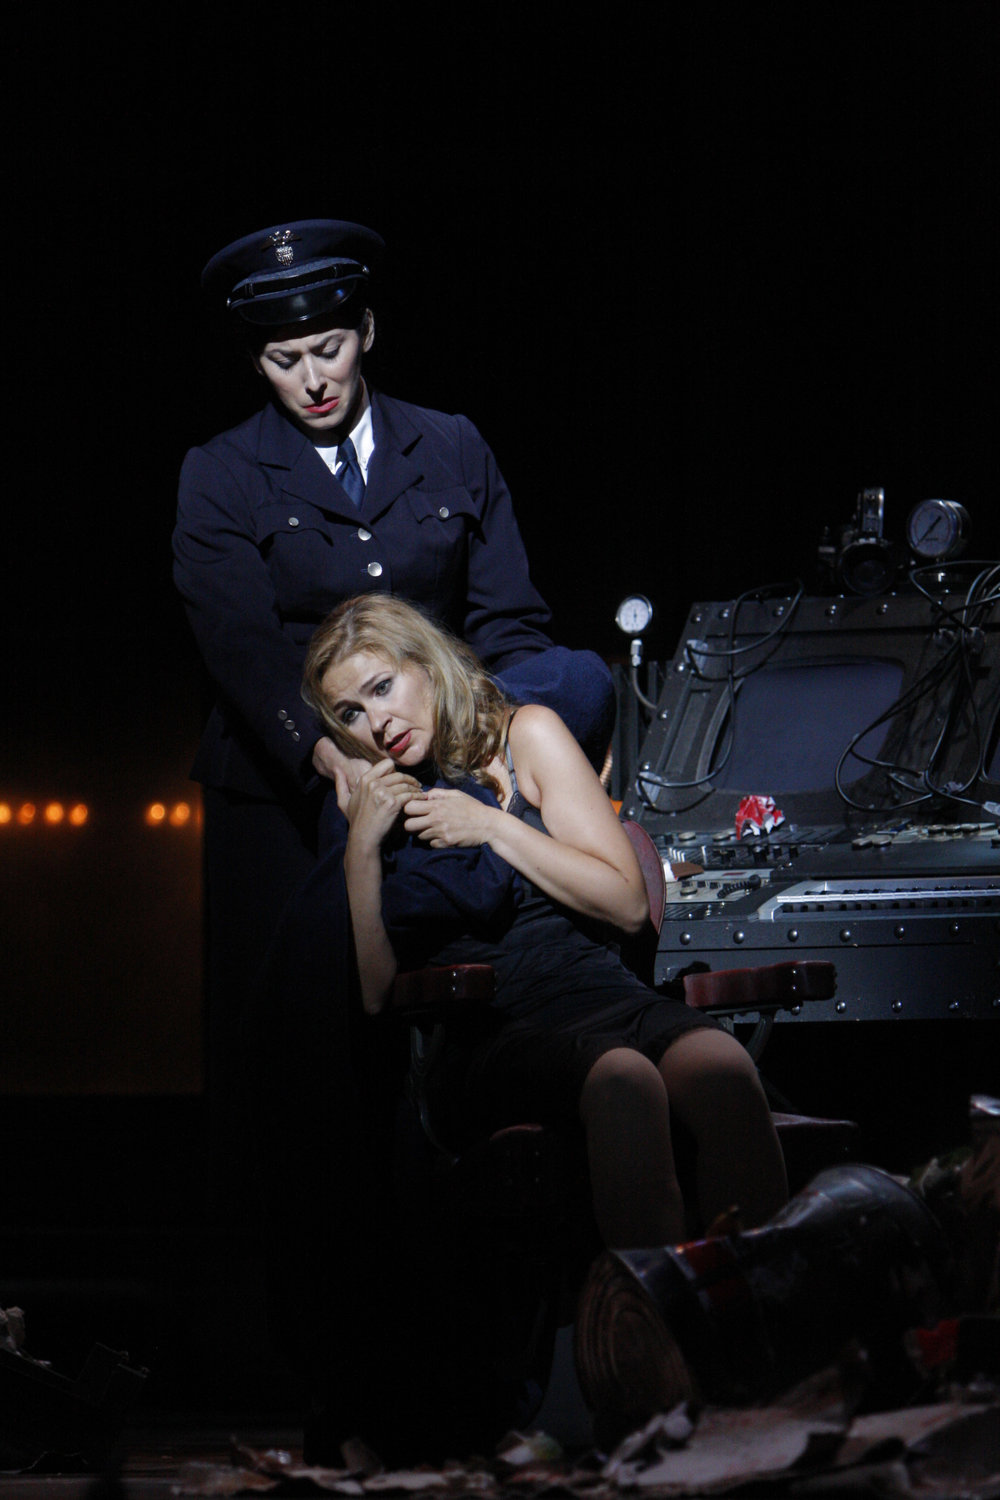 Beth Clayton (top) as the Officer, with Ruxandra Donose as Veronica Quaife in The Fly. Photo by Robert Millard for the Los Angeles Opera, 2008